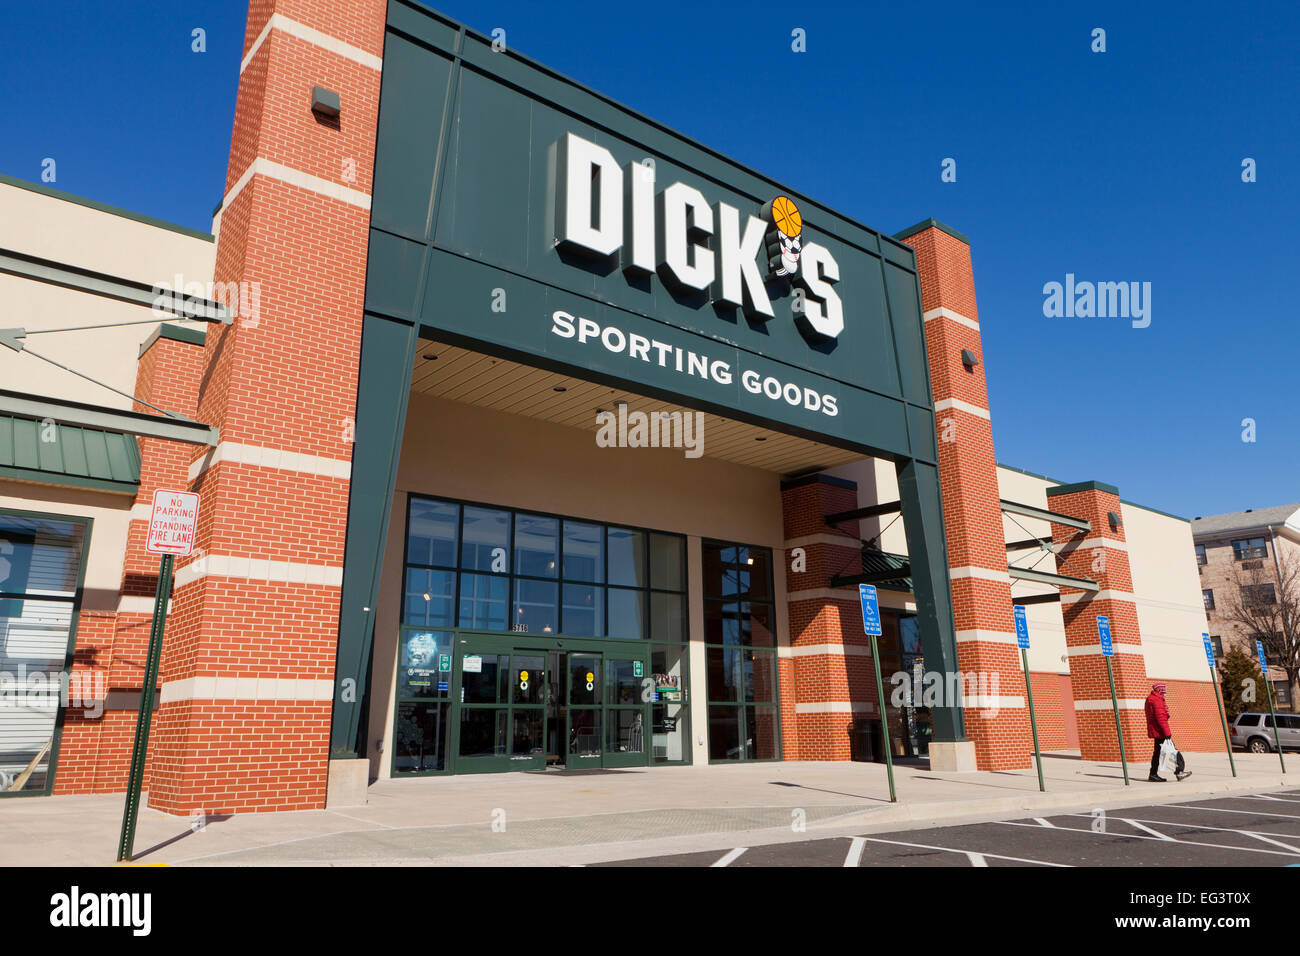 Dick's Sporting Goods storefront - USA - Stock Image